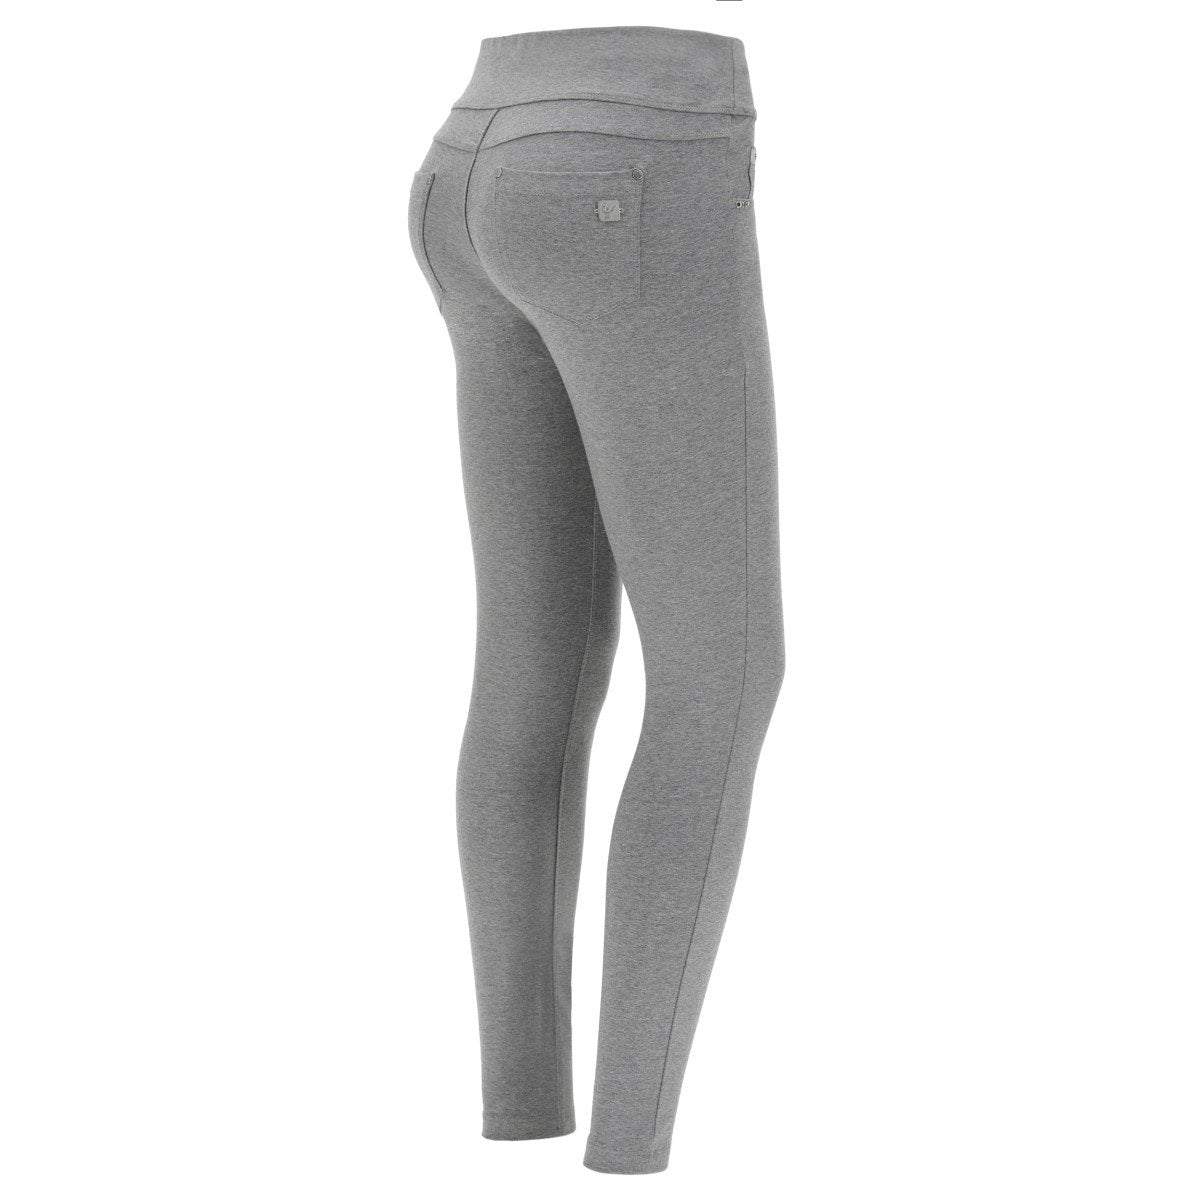 N.O.W JEGGING 5 POCKET MELANGE GREY